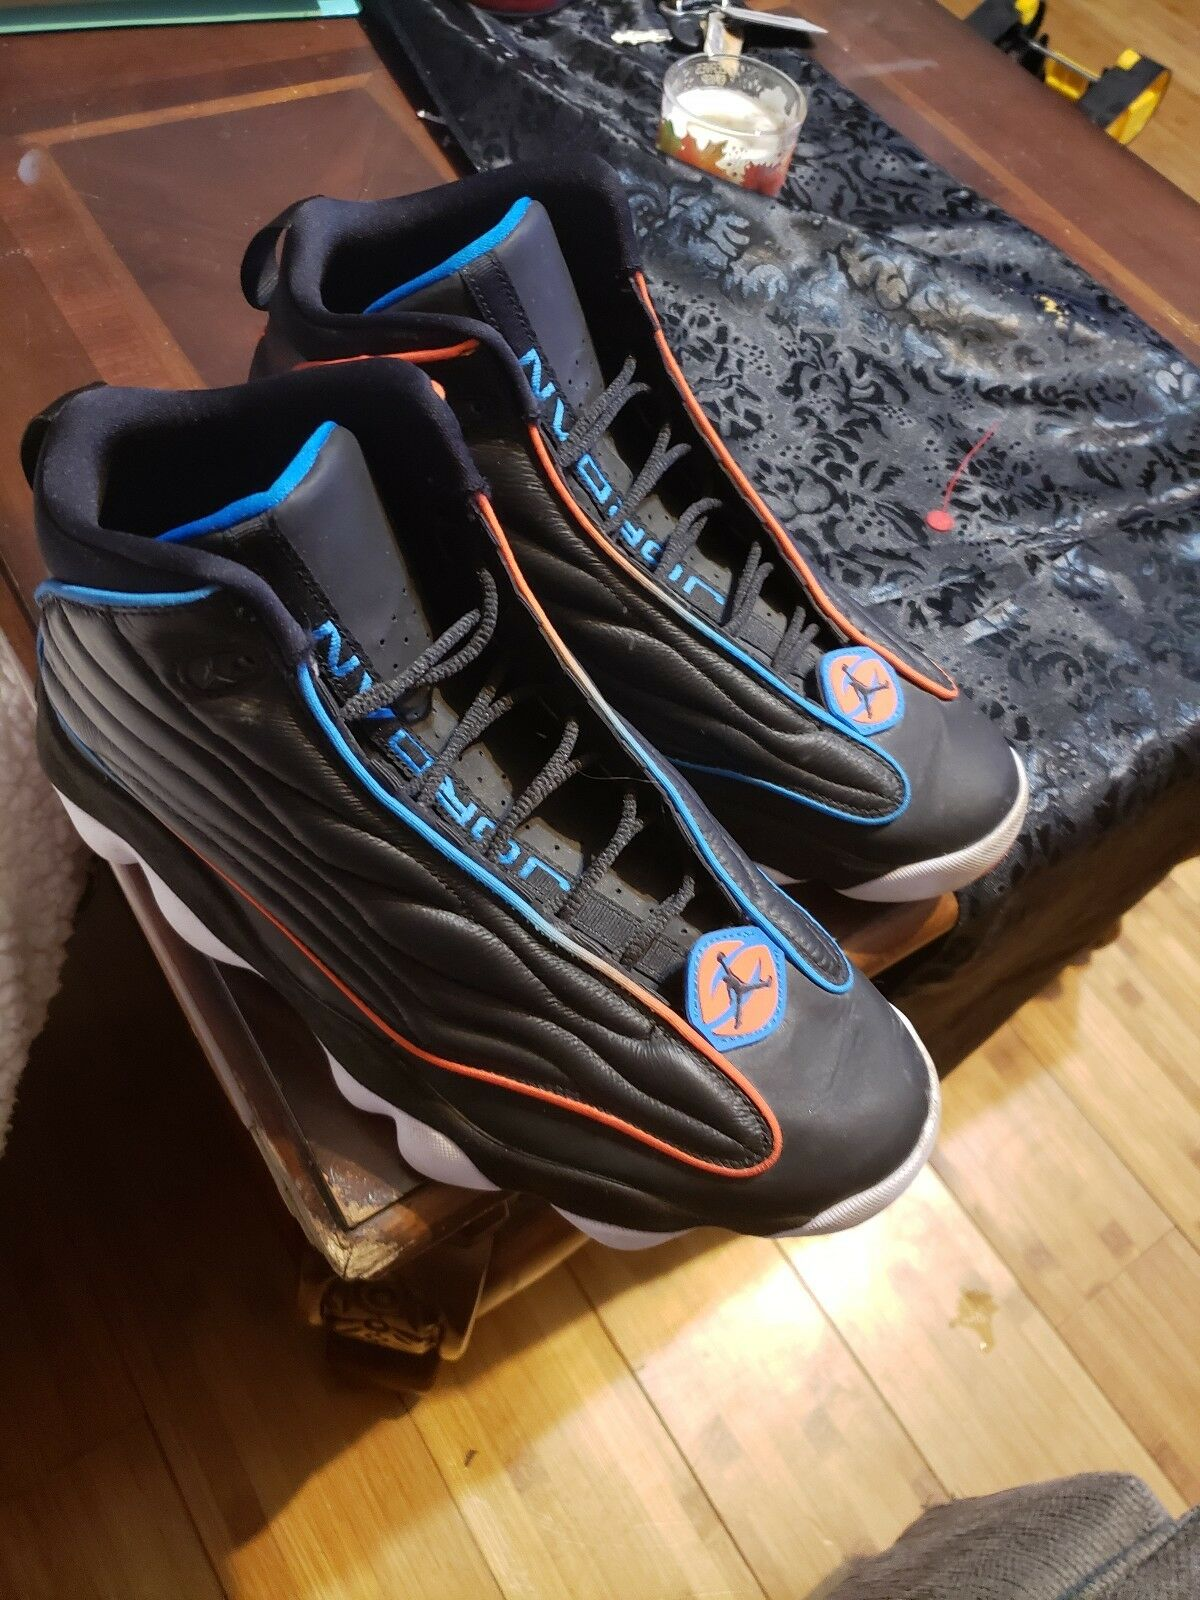 77db8e09a96b6 Nike Air Jordan Pro Strong BG Black Photo bluee 407484 008 LD orange Team  nxfvds4671-Athletic Shoes - sandals.ewdayplumbing.com